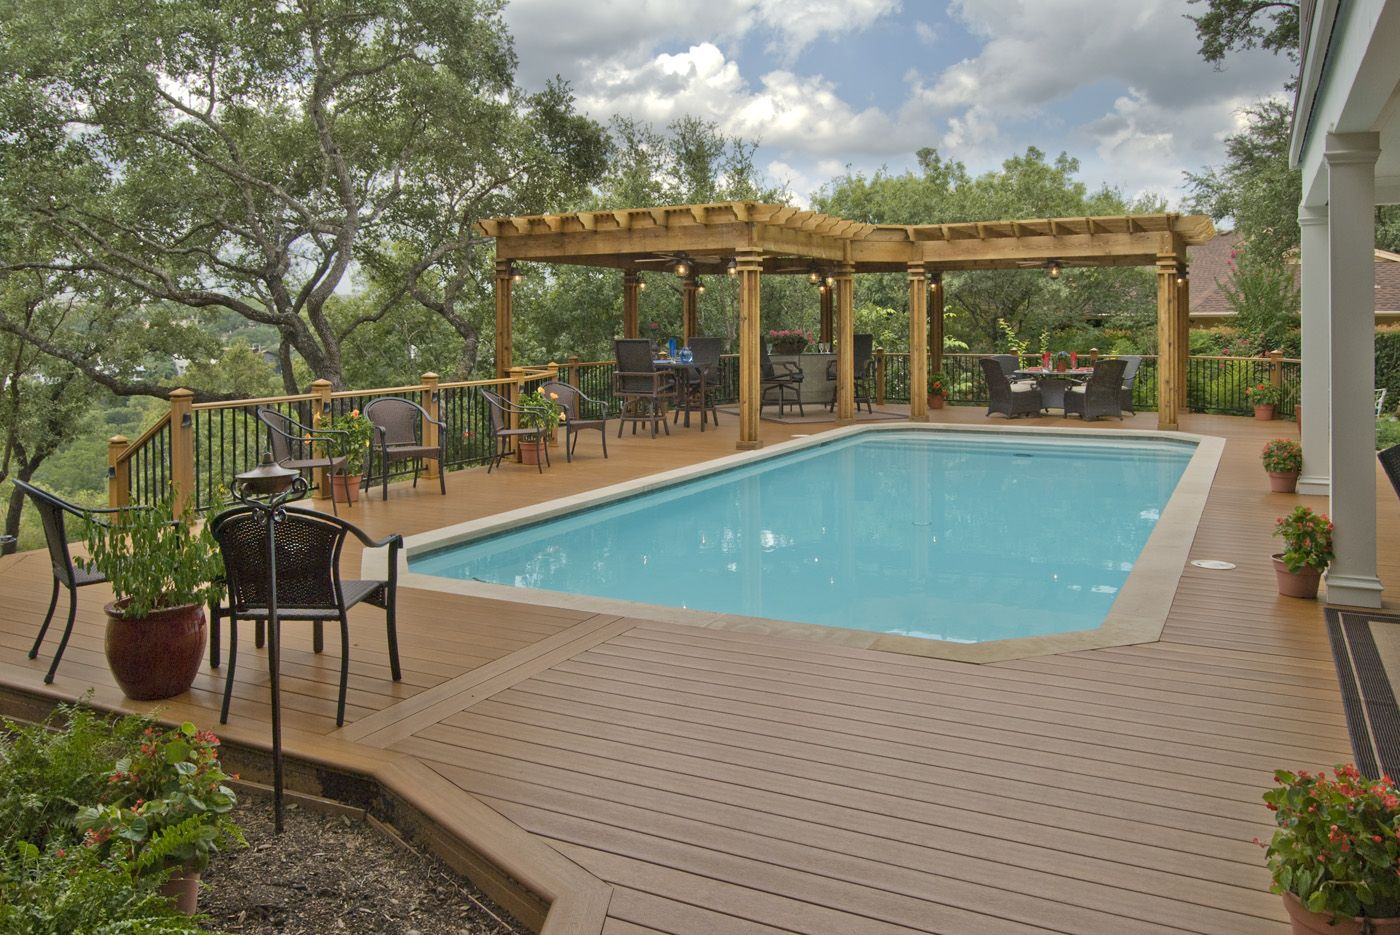 LowMaintenance Synthetic Decking Options for CareFree